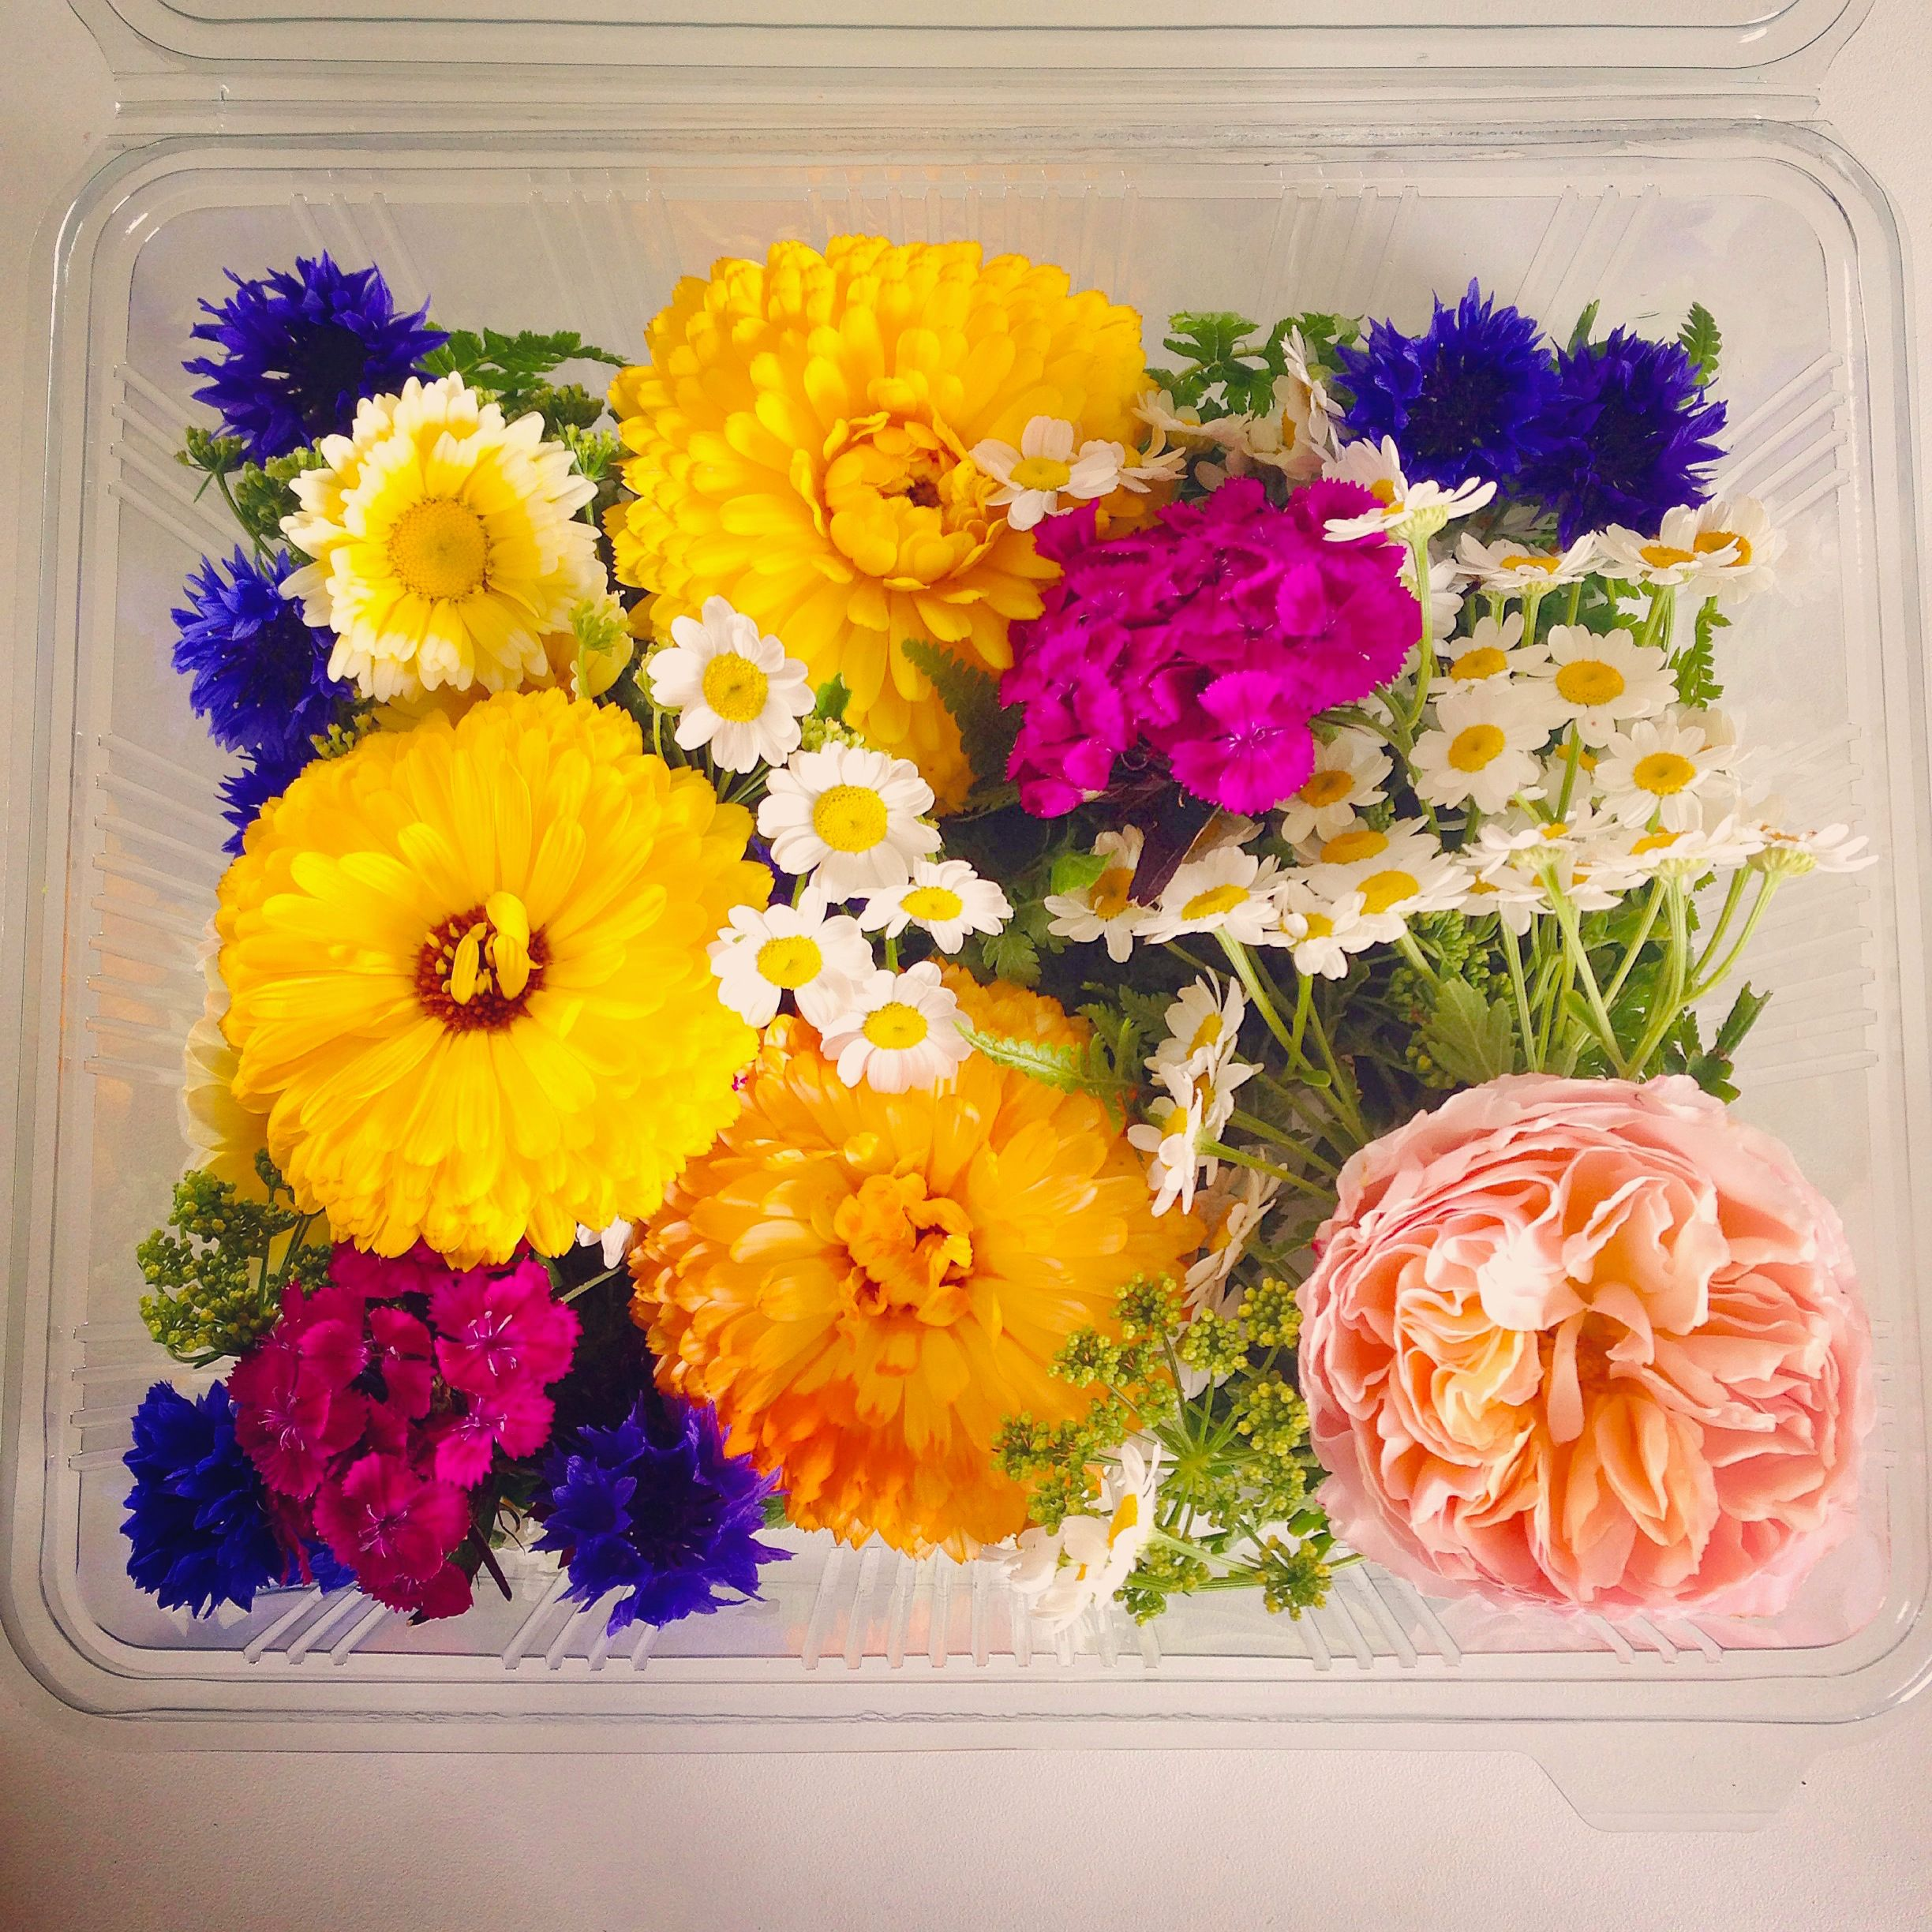 Cheap flowers by post next day delivery choice image flower cheap flowers by post next day delivery choice image flower big topper edible flower selection for izmirmasajfo